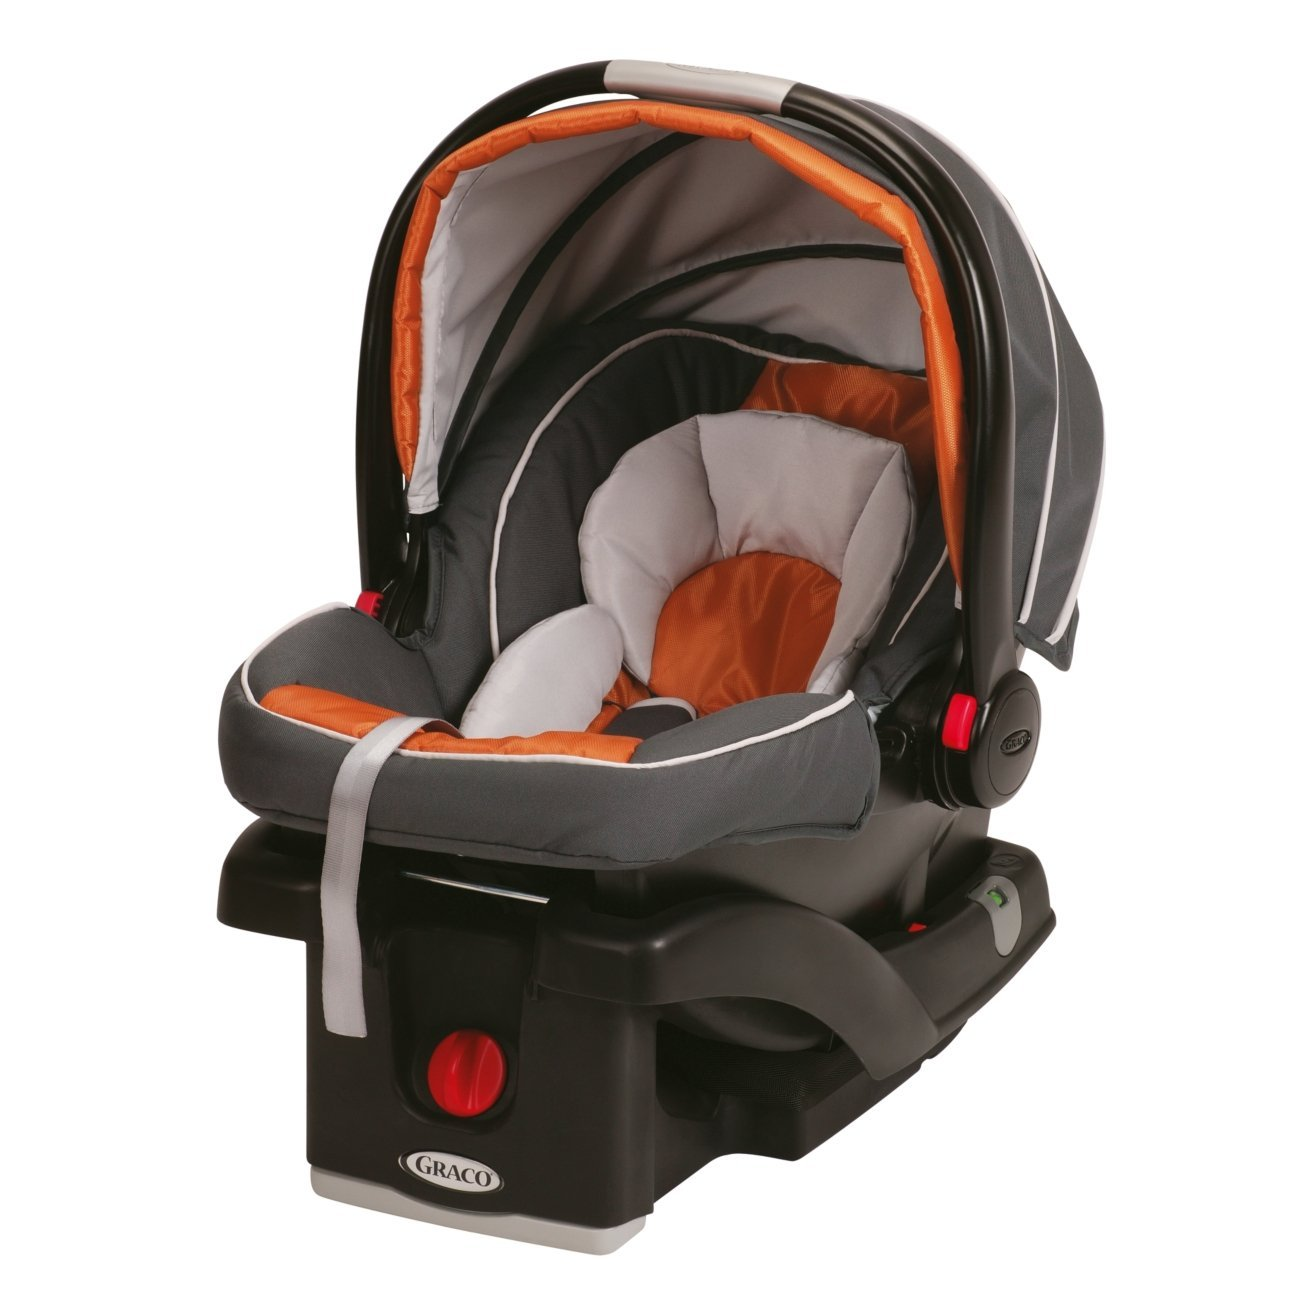 Who Is The Market Target Of Car Seat